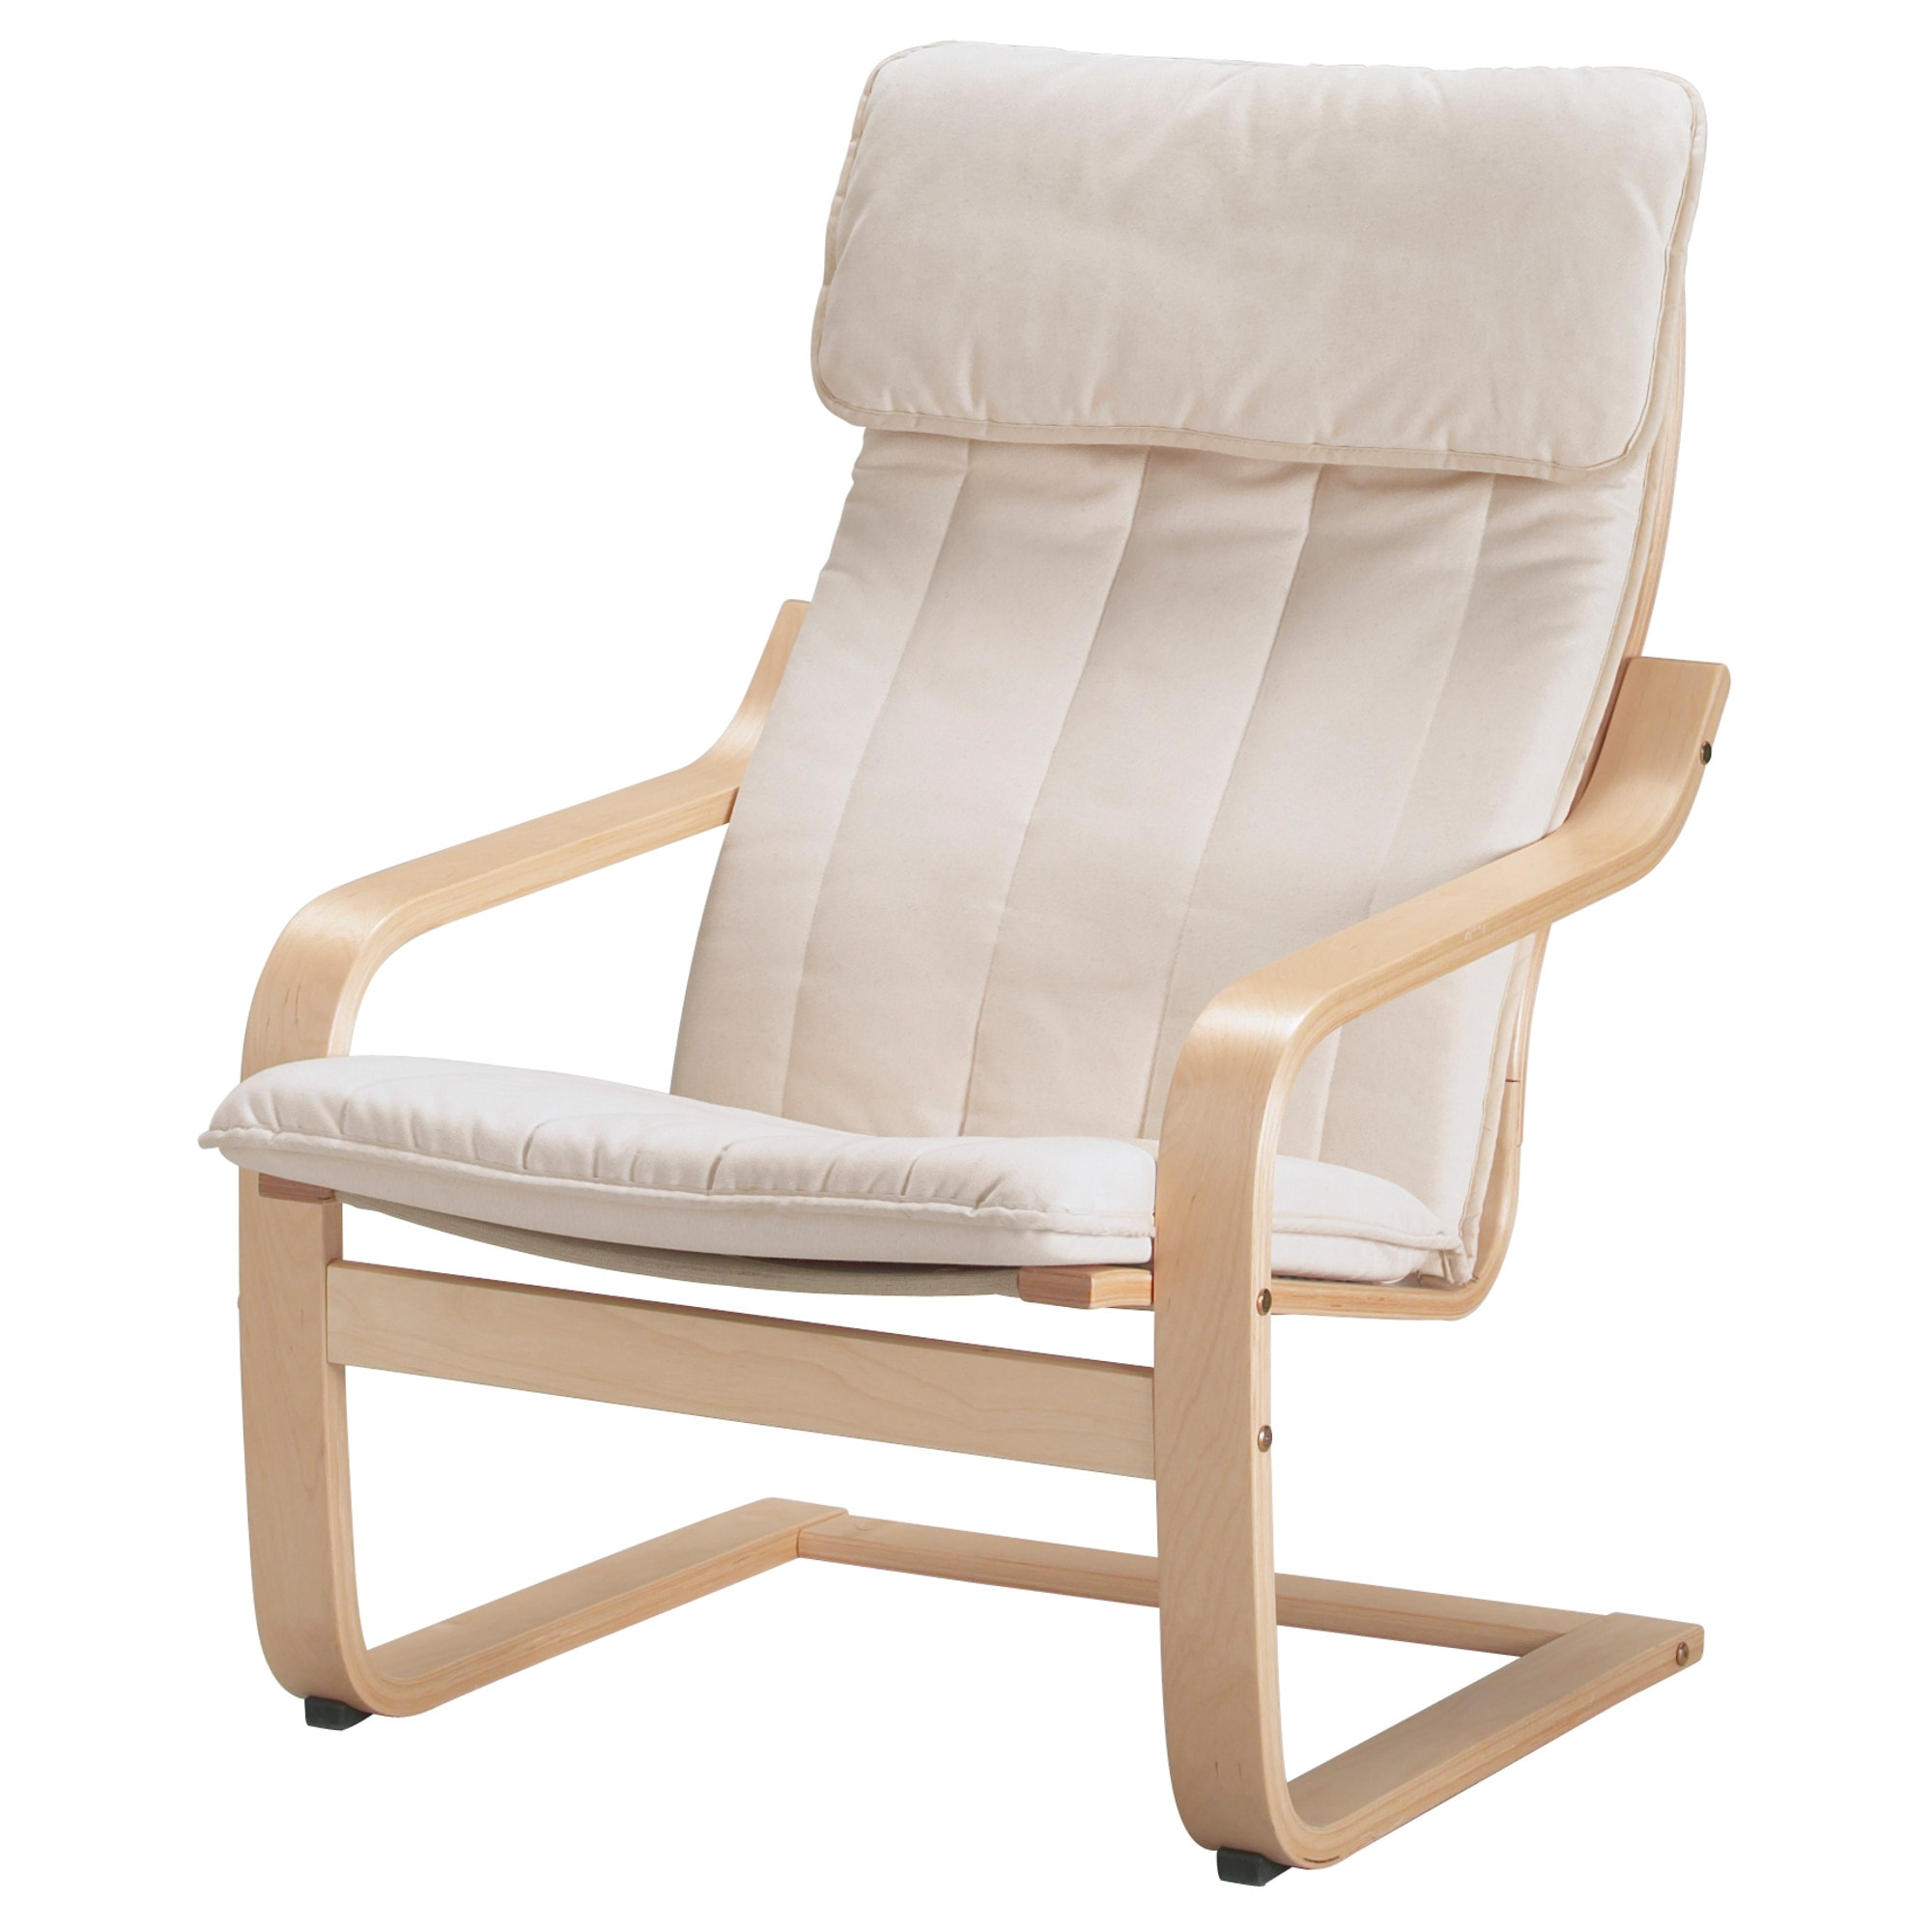 Ikea Poang Armchair Design Decoration